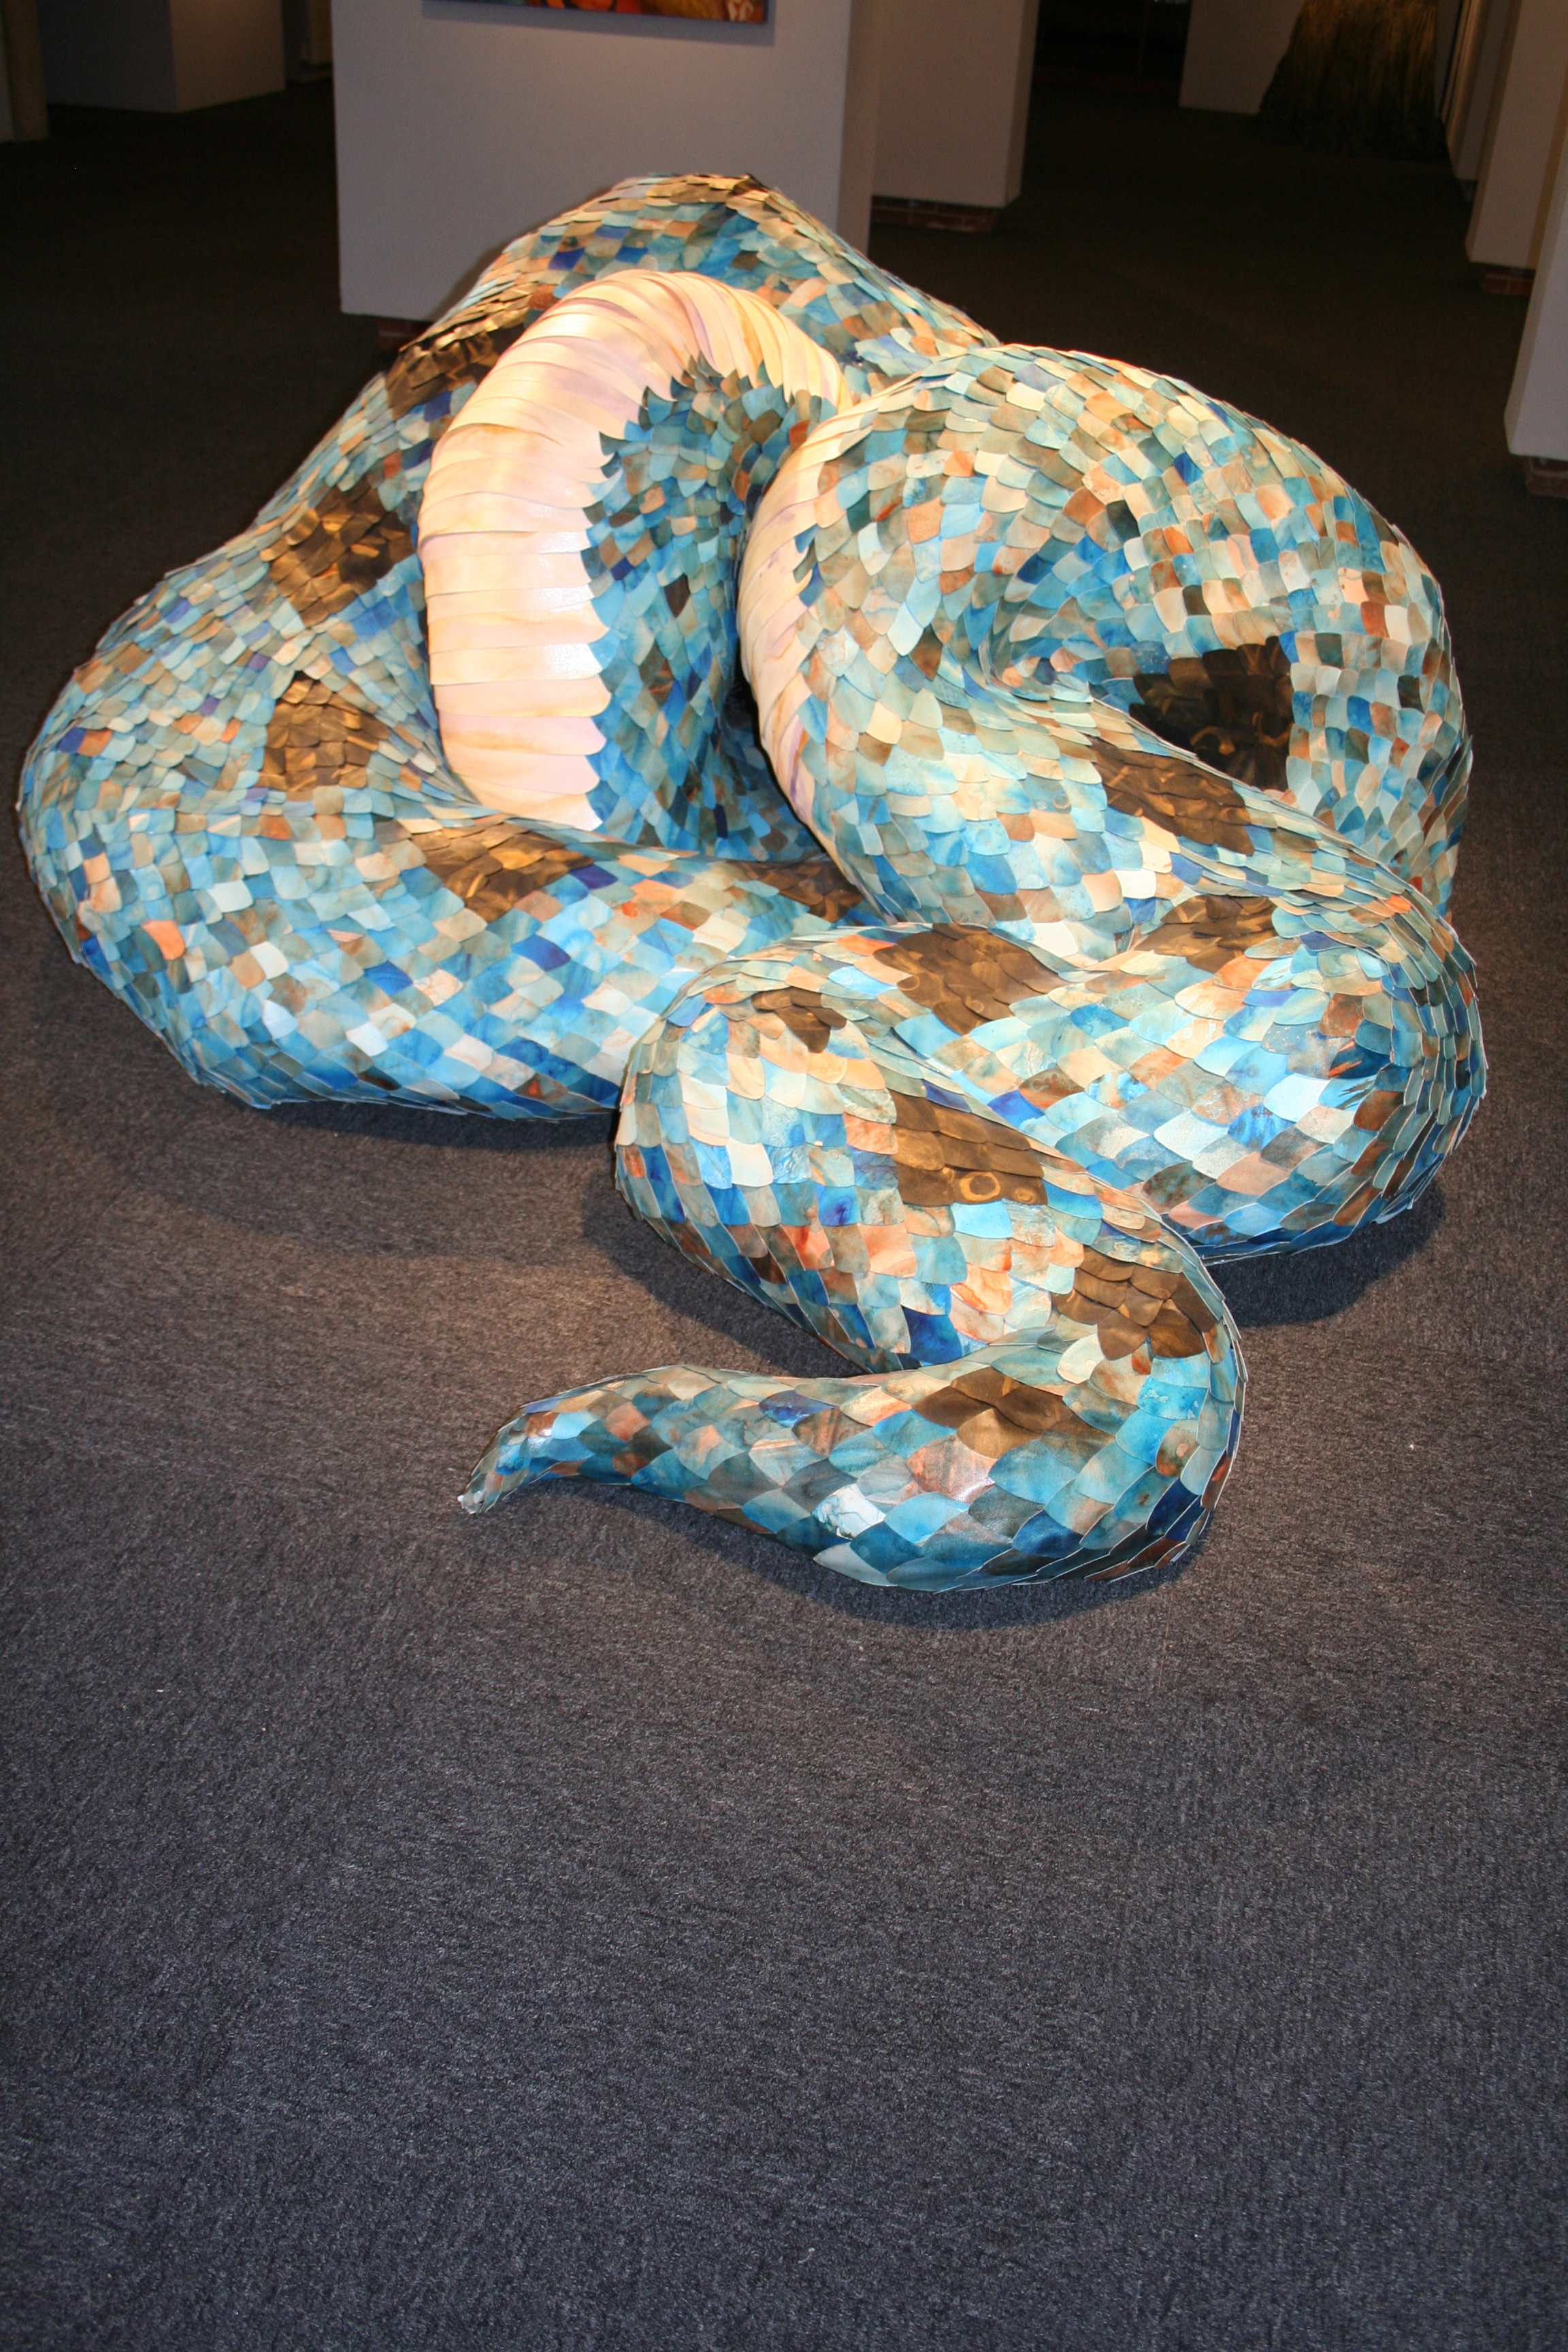 some sort of snake resembling sculpture